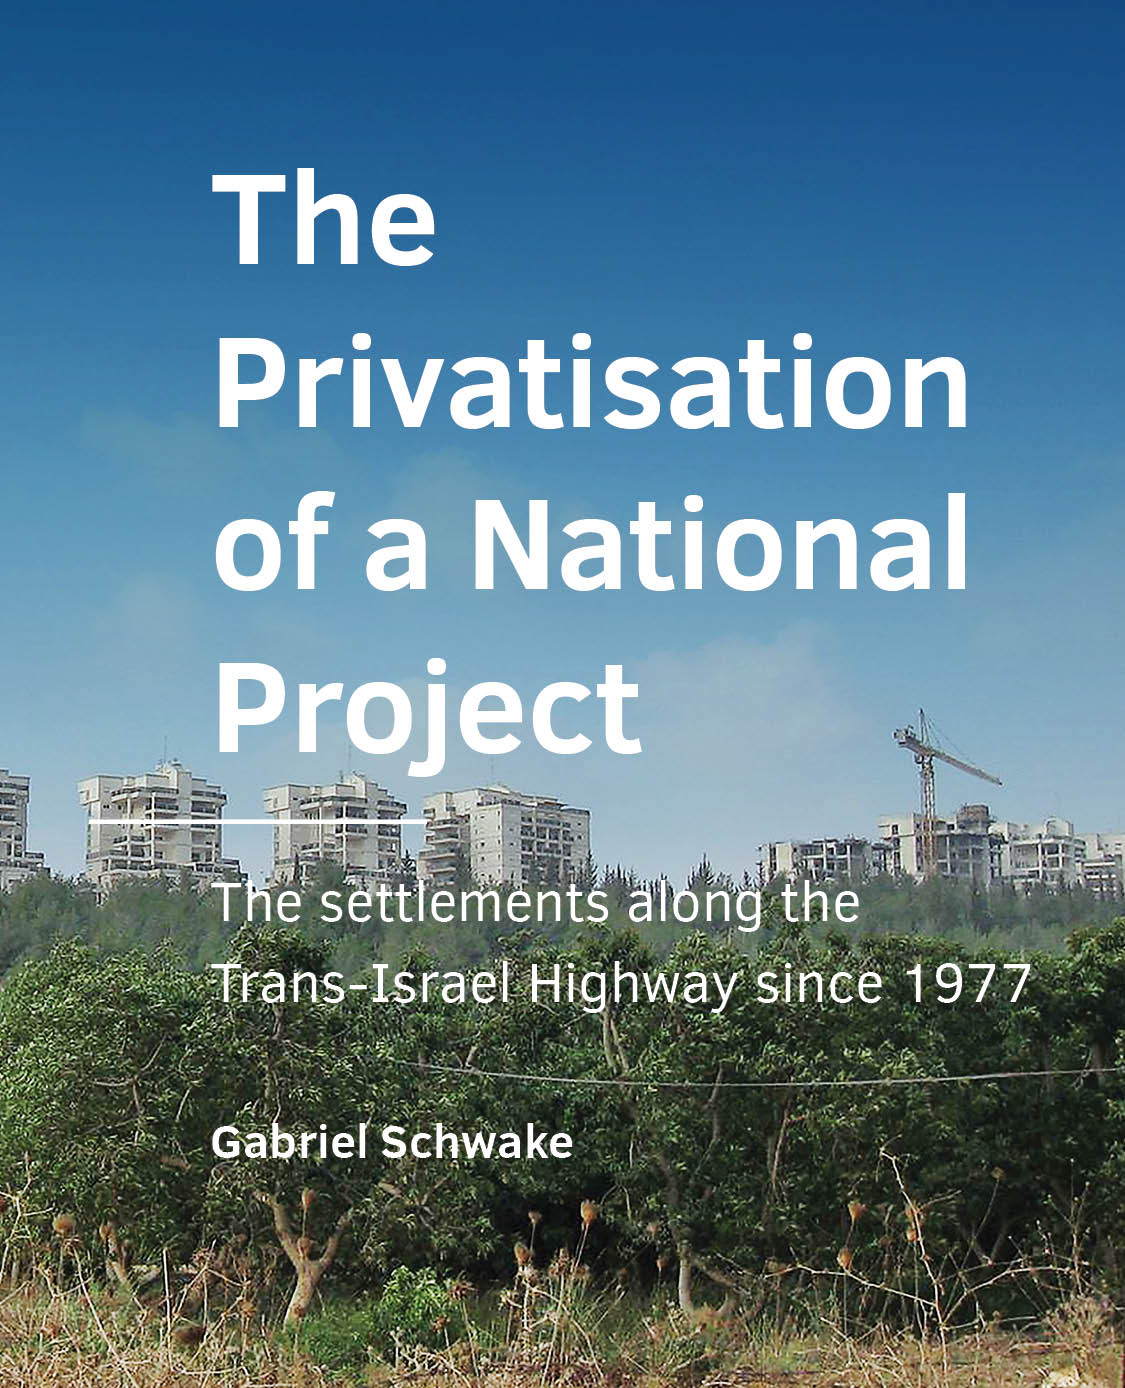 View No. 14 (2020): The Privatisation of a National Project